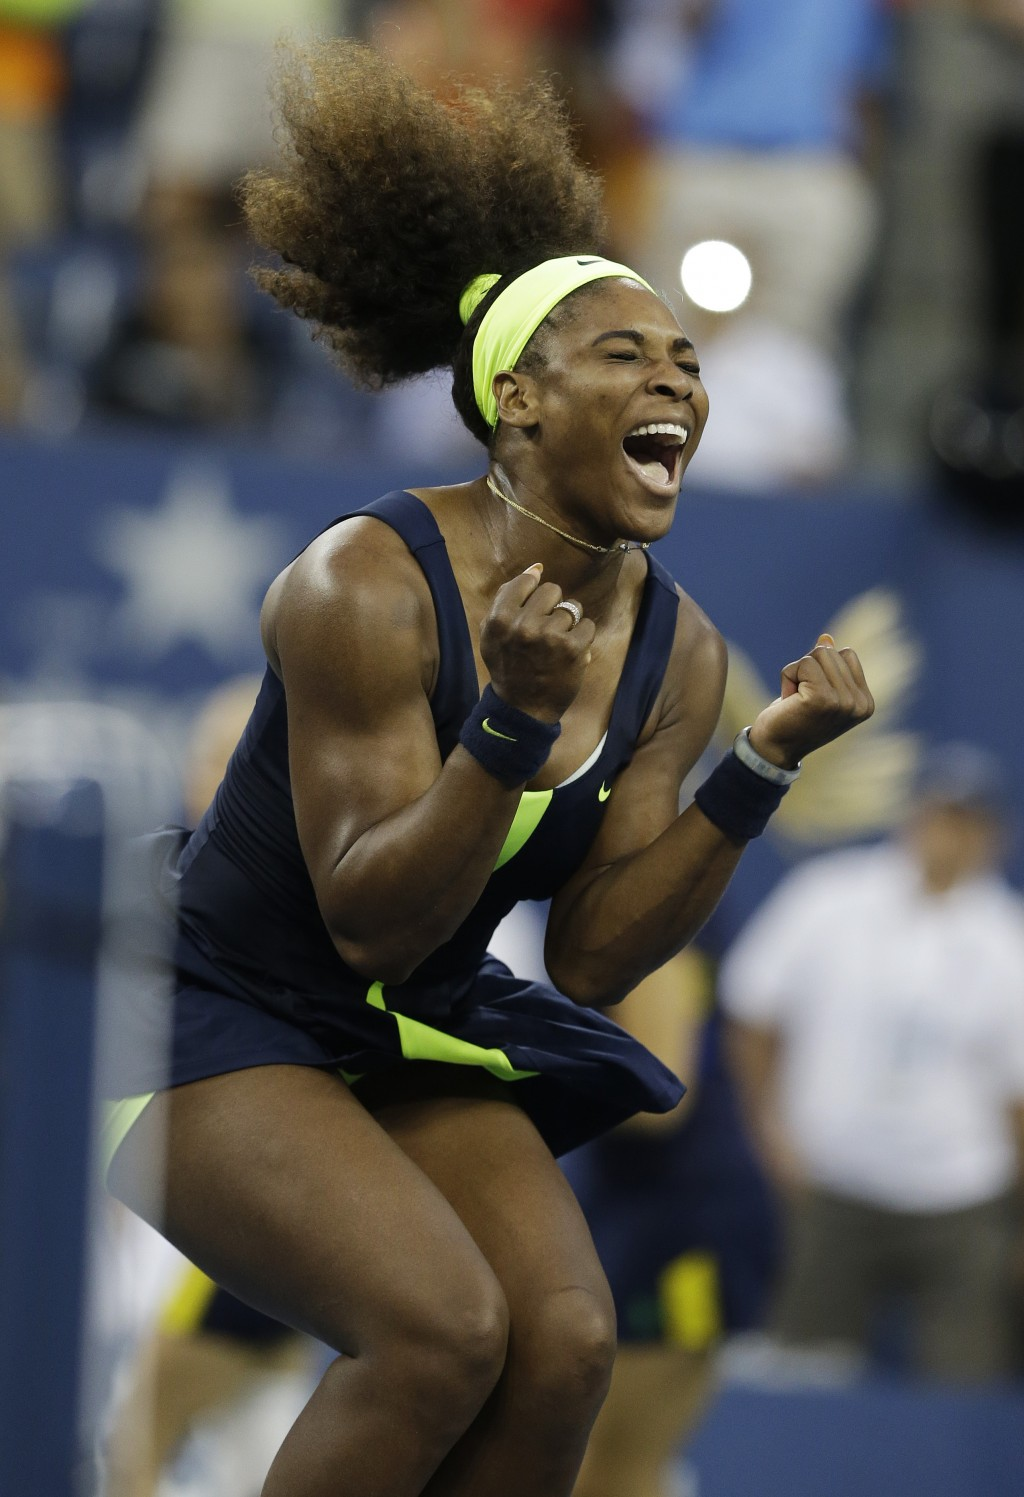 File-This Sept. 9, 2012, file photo shows Serena Williams reacting after beating Victoria Azarenka, of Belarus, in the championship match at the 2012 ...